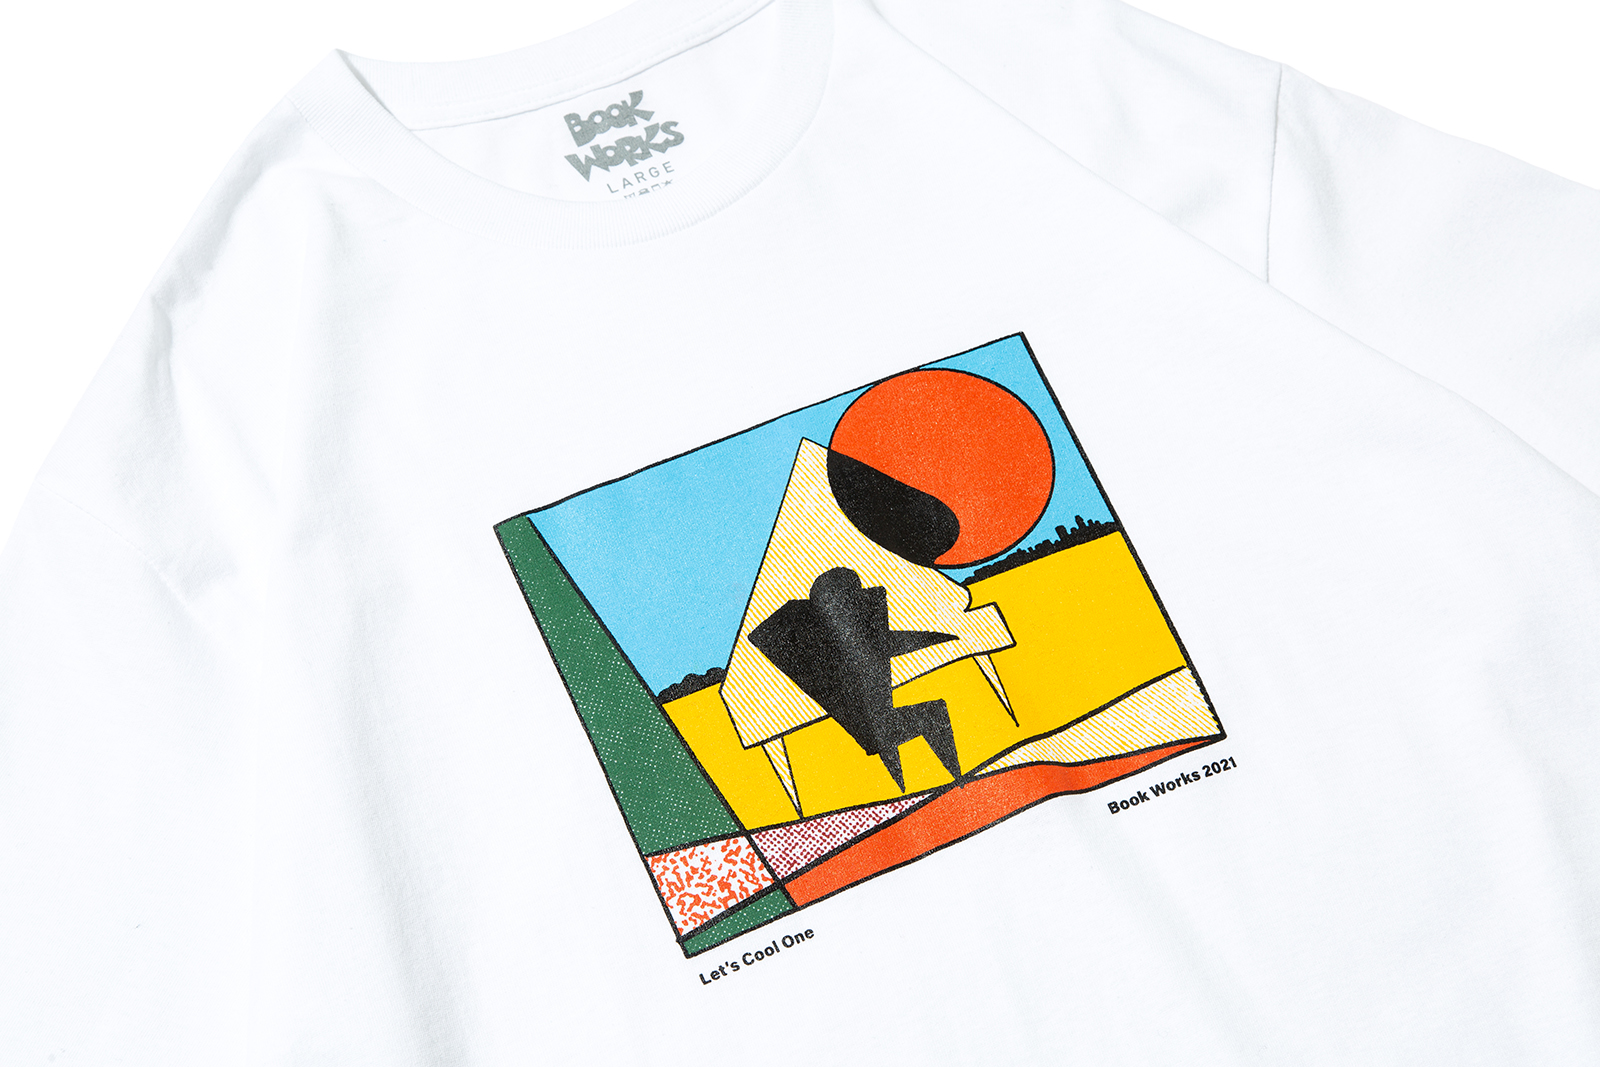 lets-cool-one-tee_p1